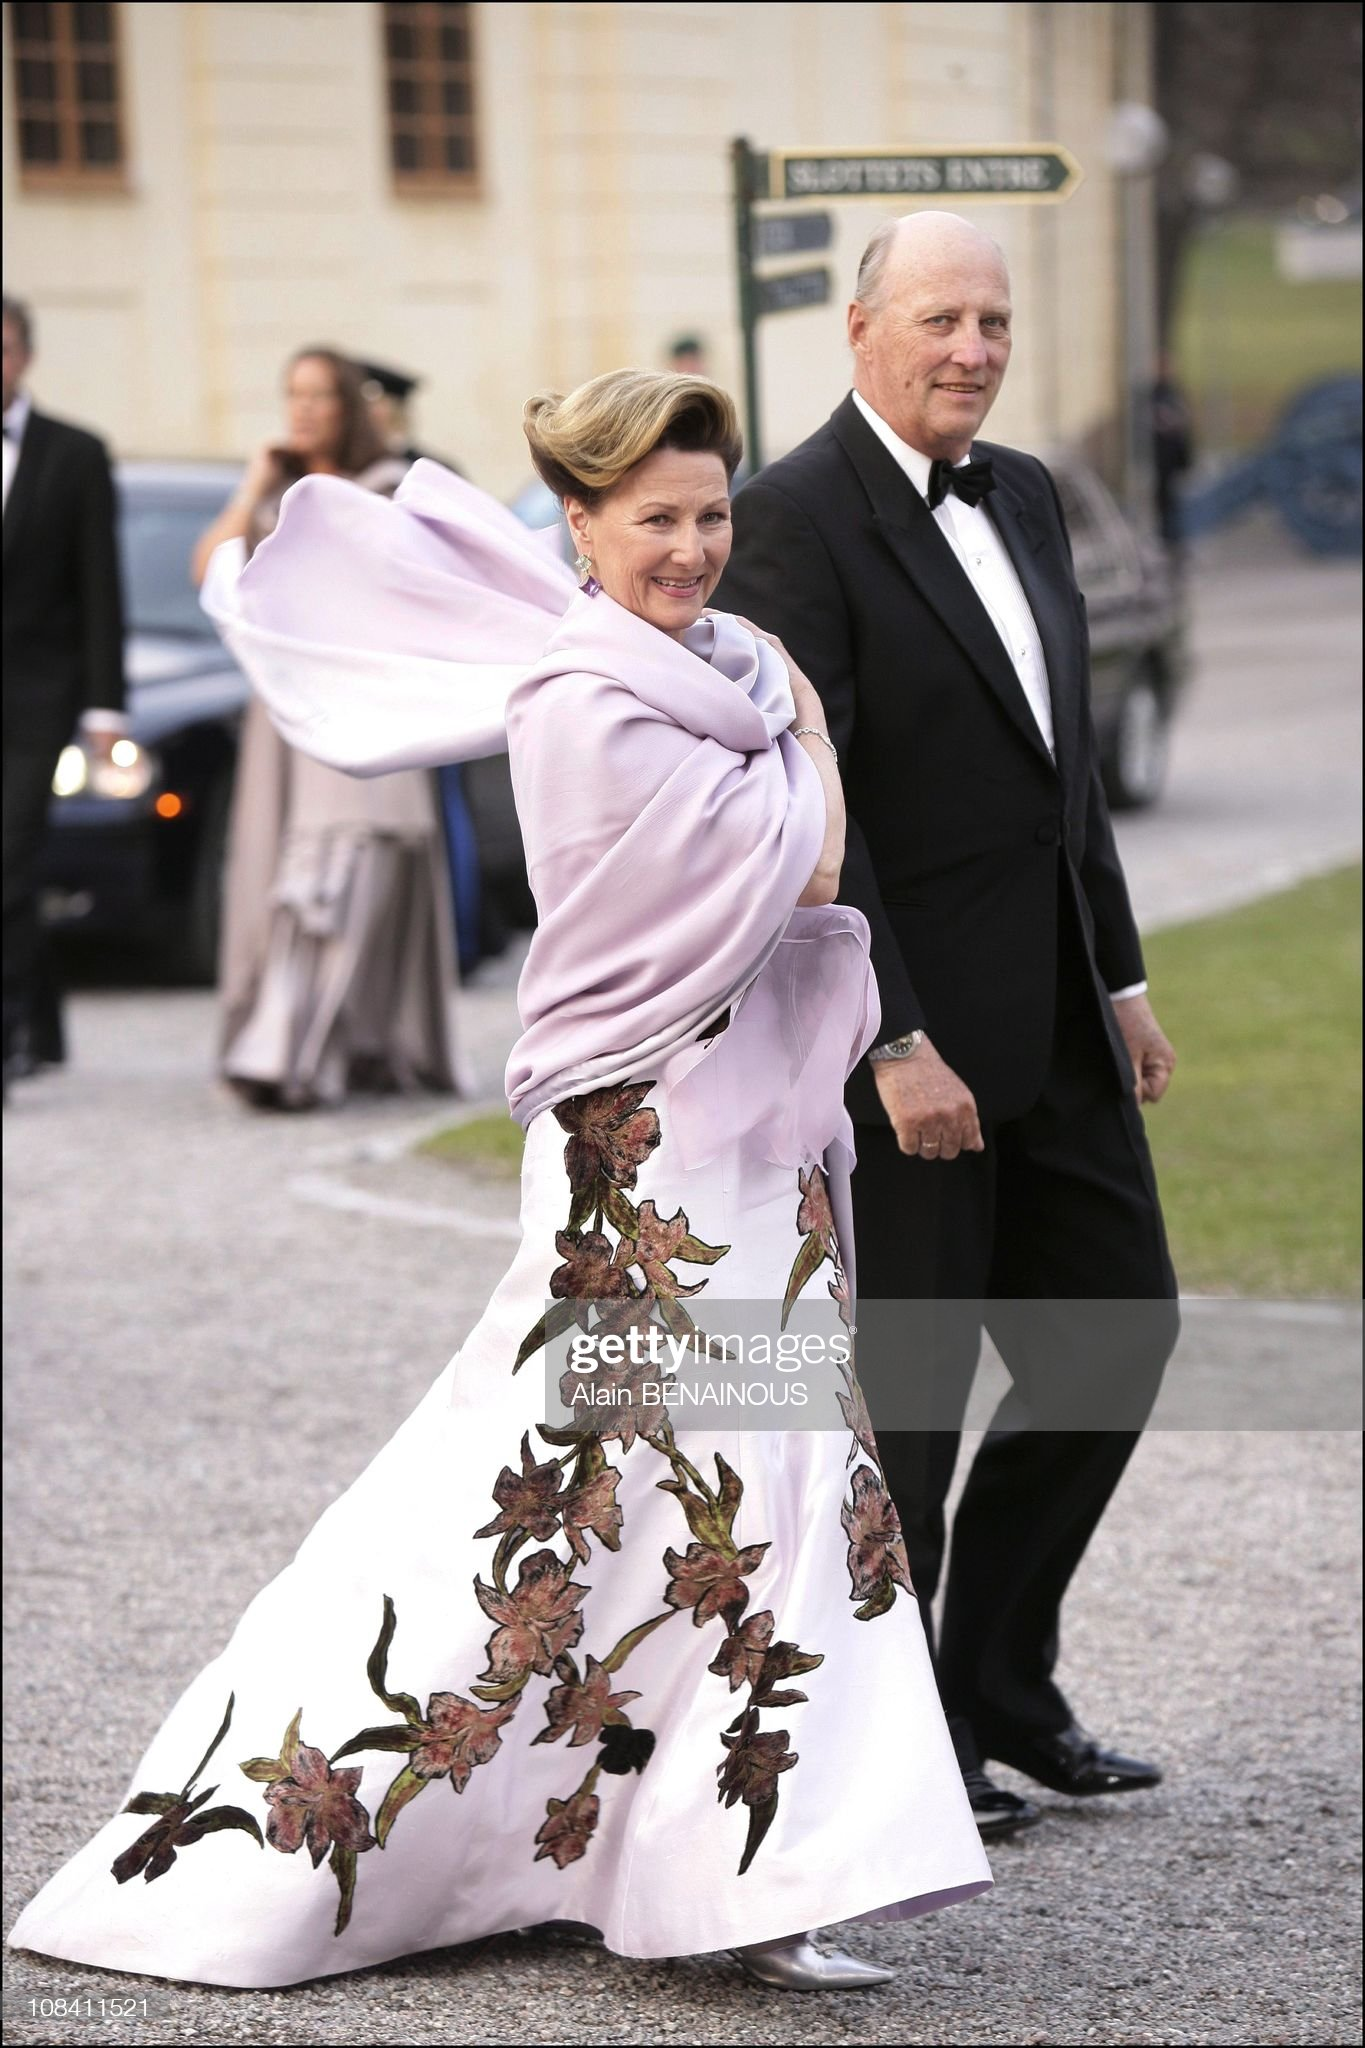 H.M King Carl Gustav's sixtieth birthday dinner at Drottningholm Palace in Stockholm, Sweden on April 29, 2006. : News Photo